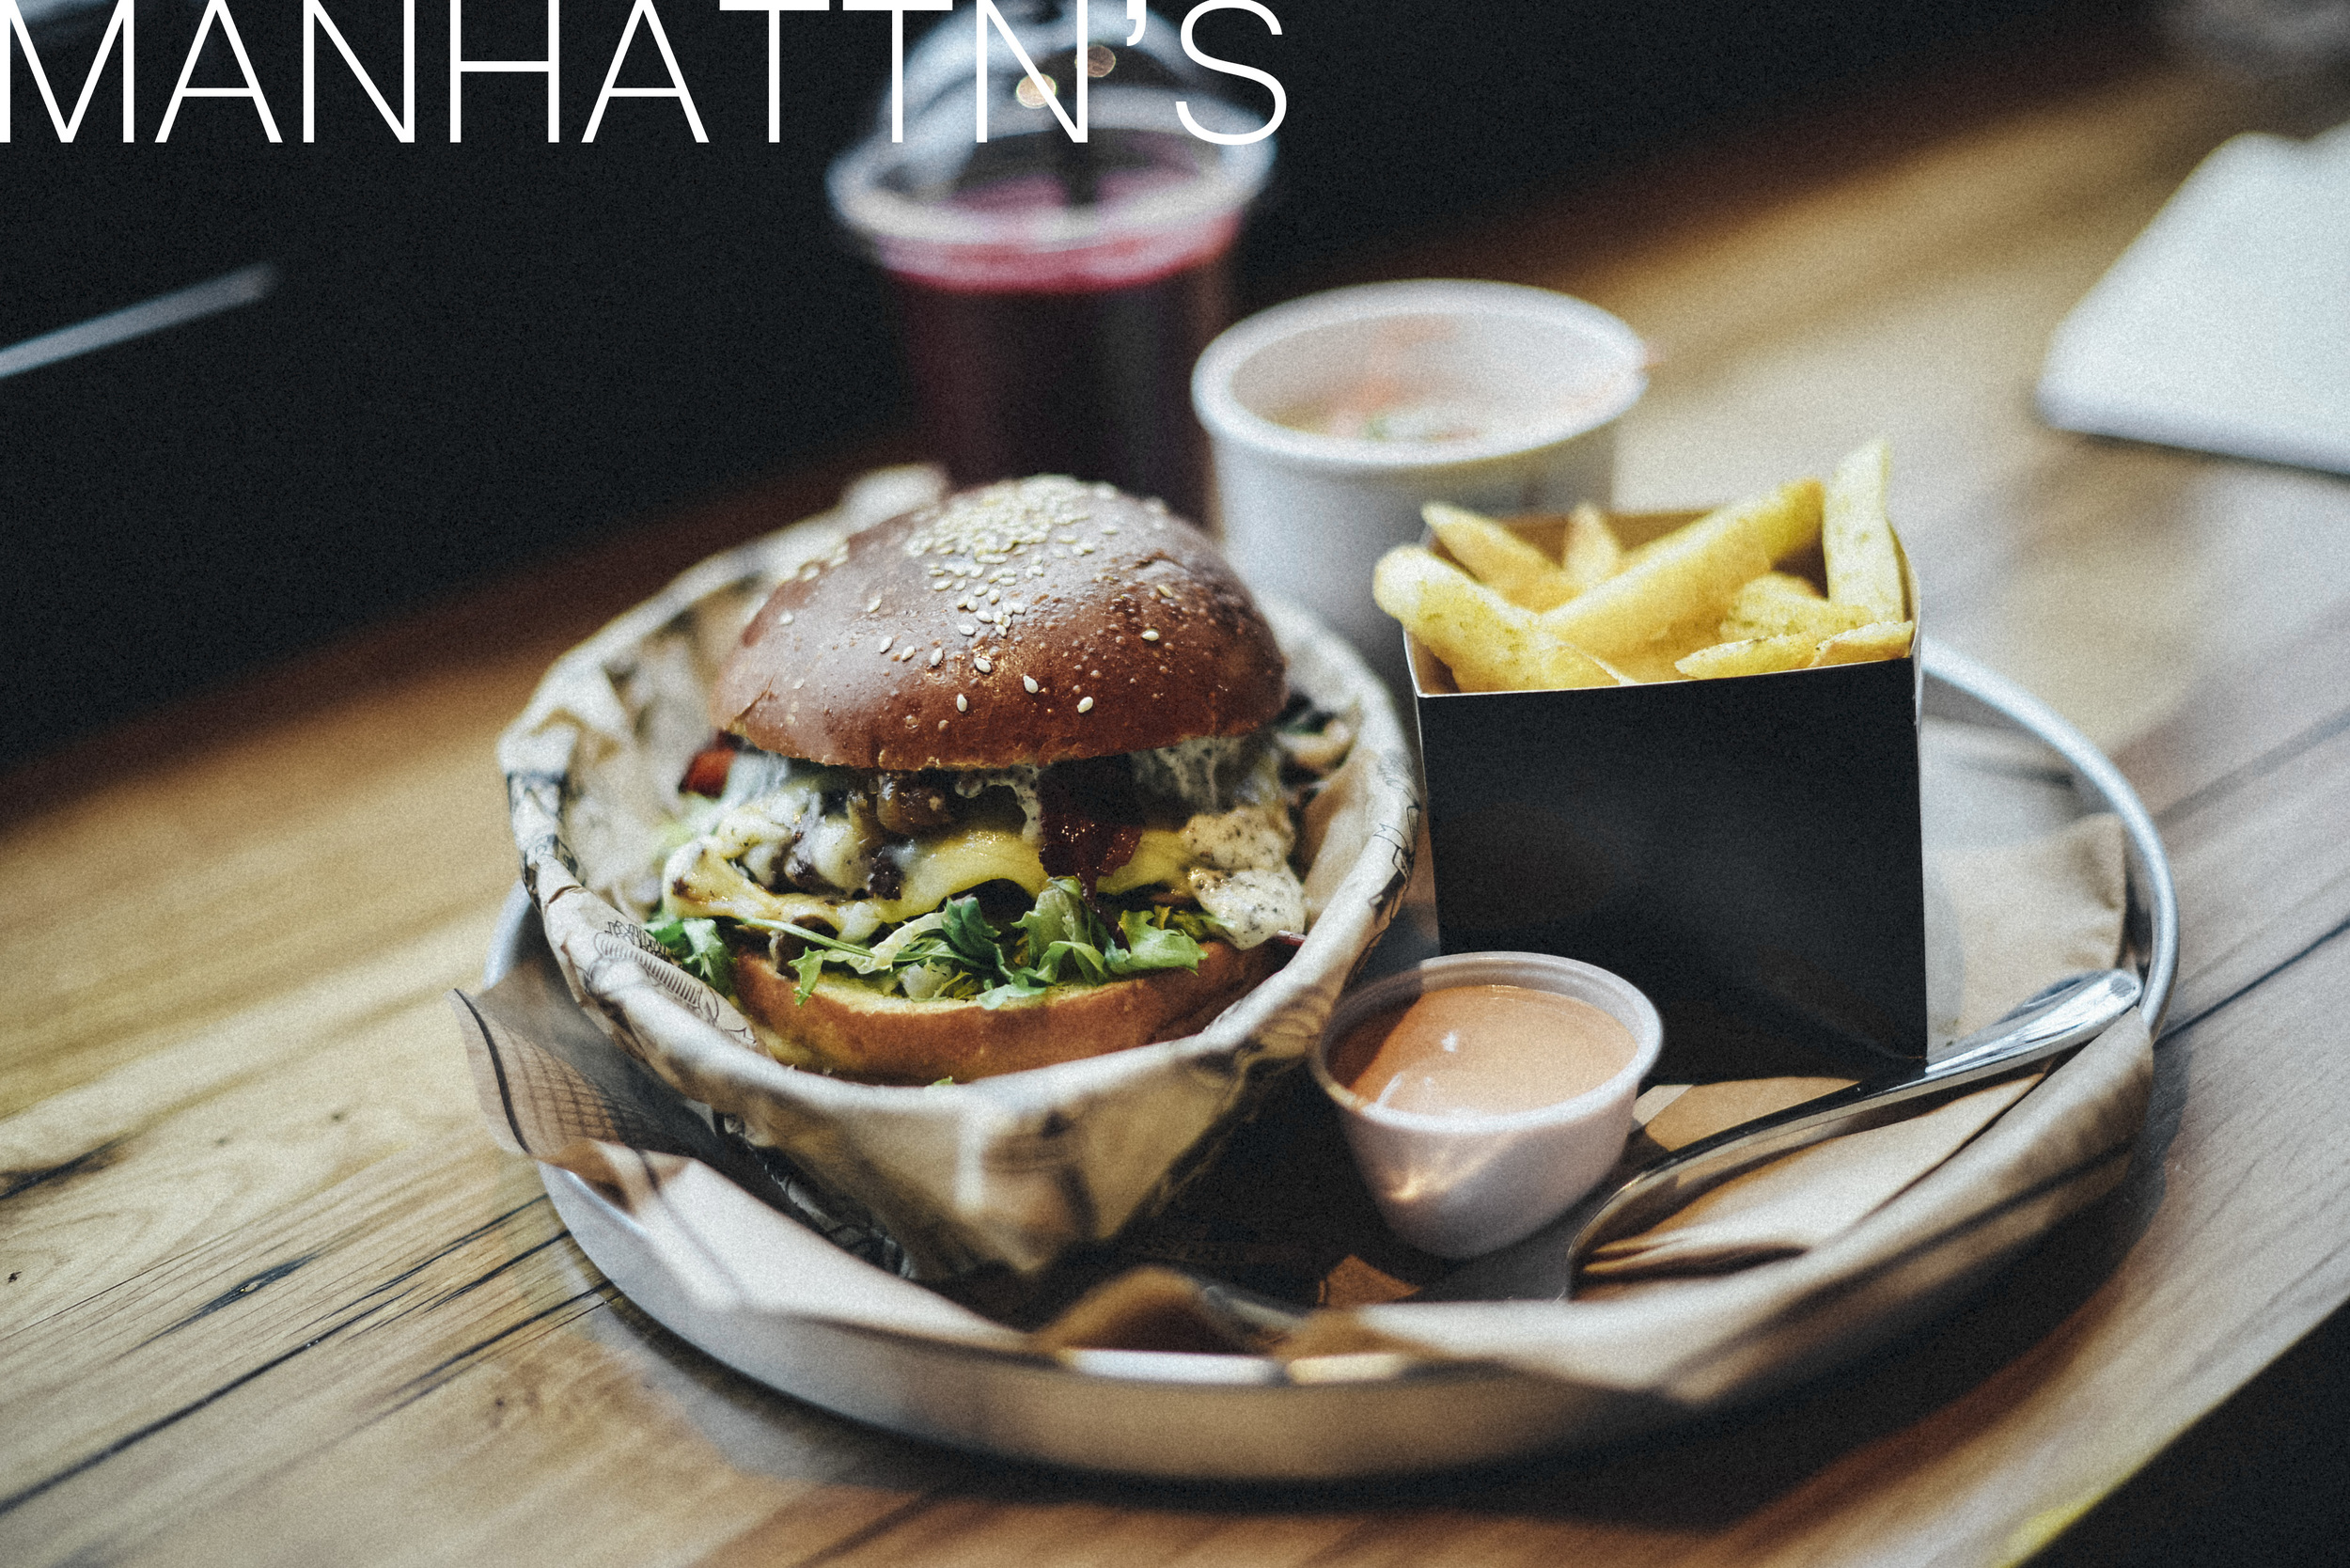 manhattn's burger brussels best lunch food and drink louise american